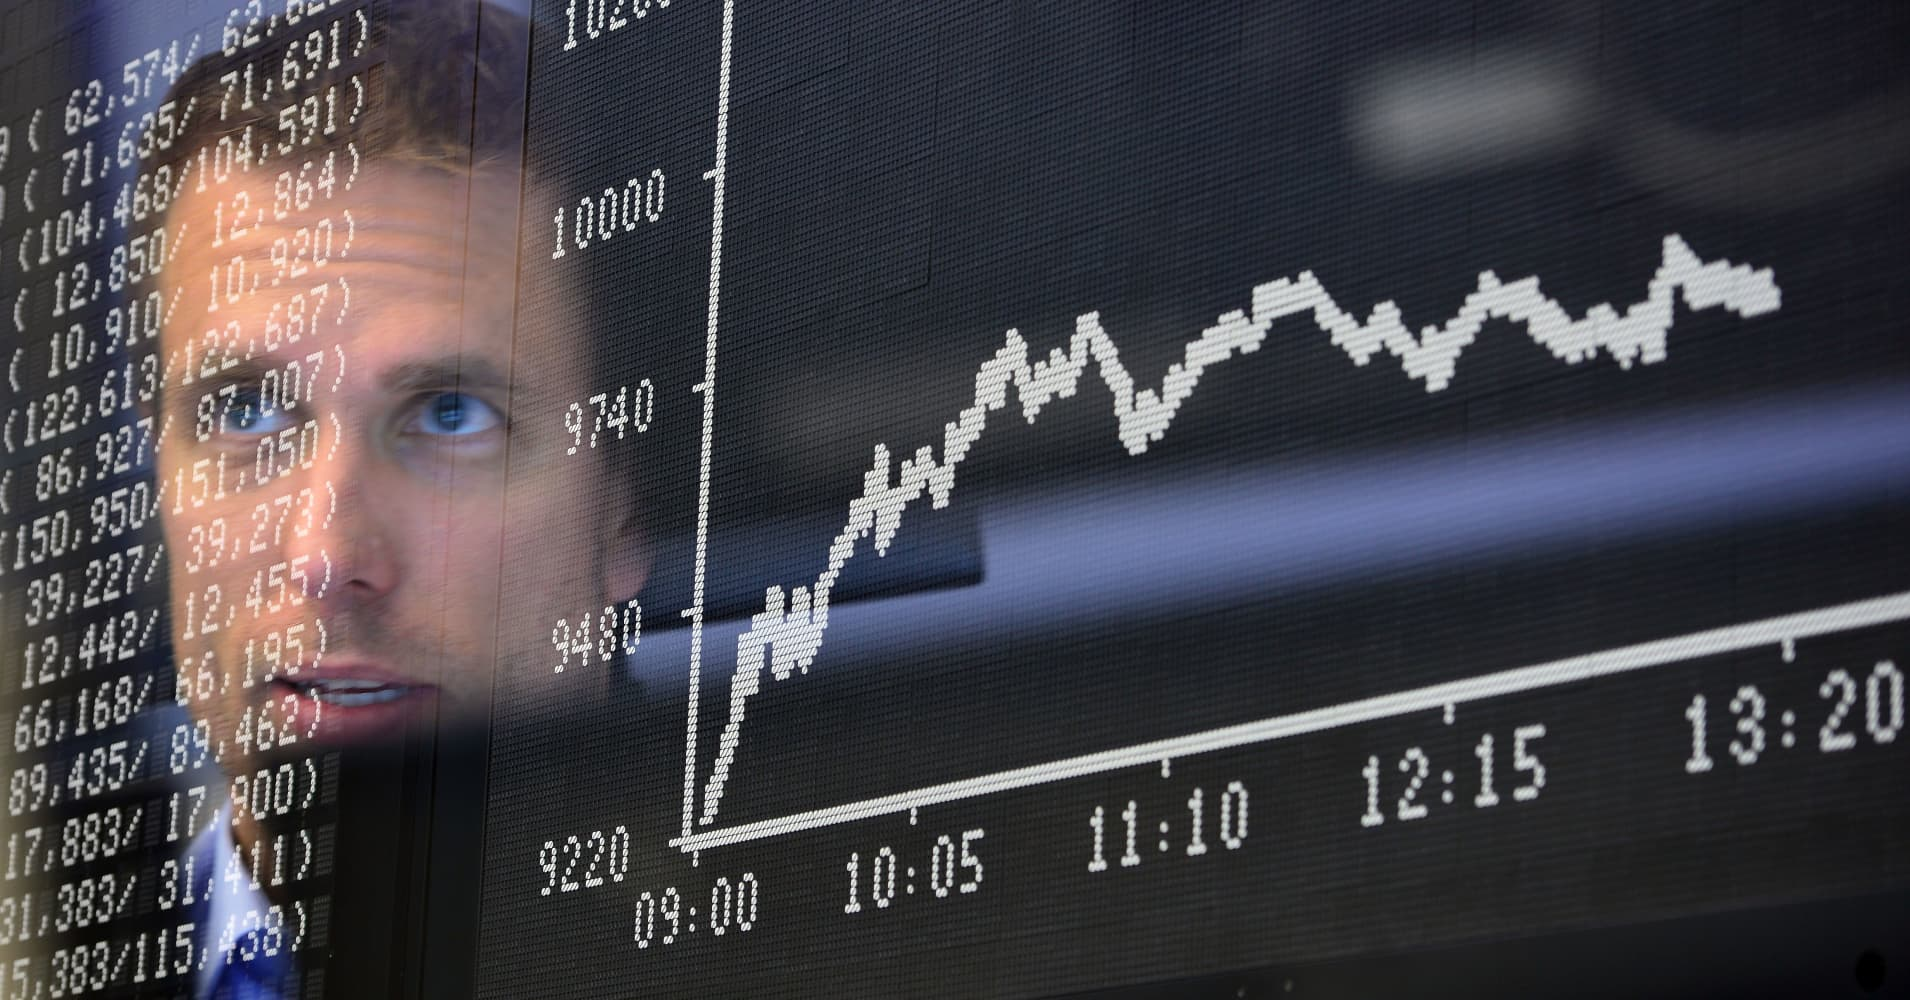 Europe stocks slightly higher as recession fears fade; Ocado shares jump 4% after e-commerce deal